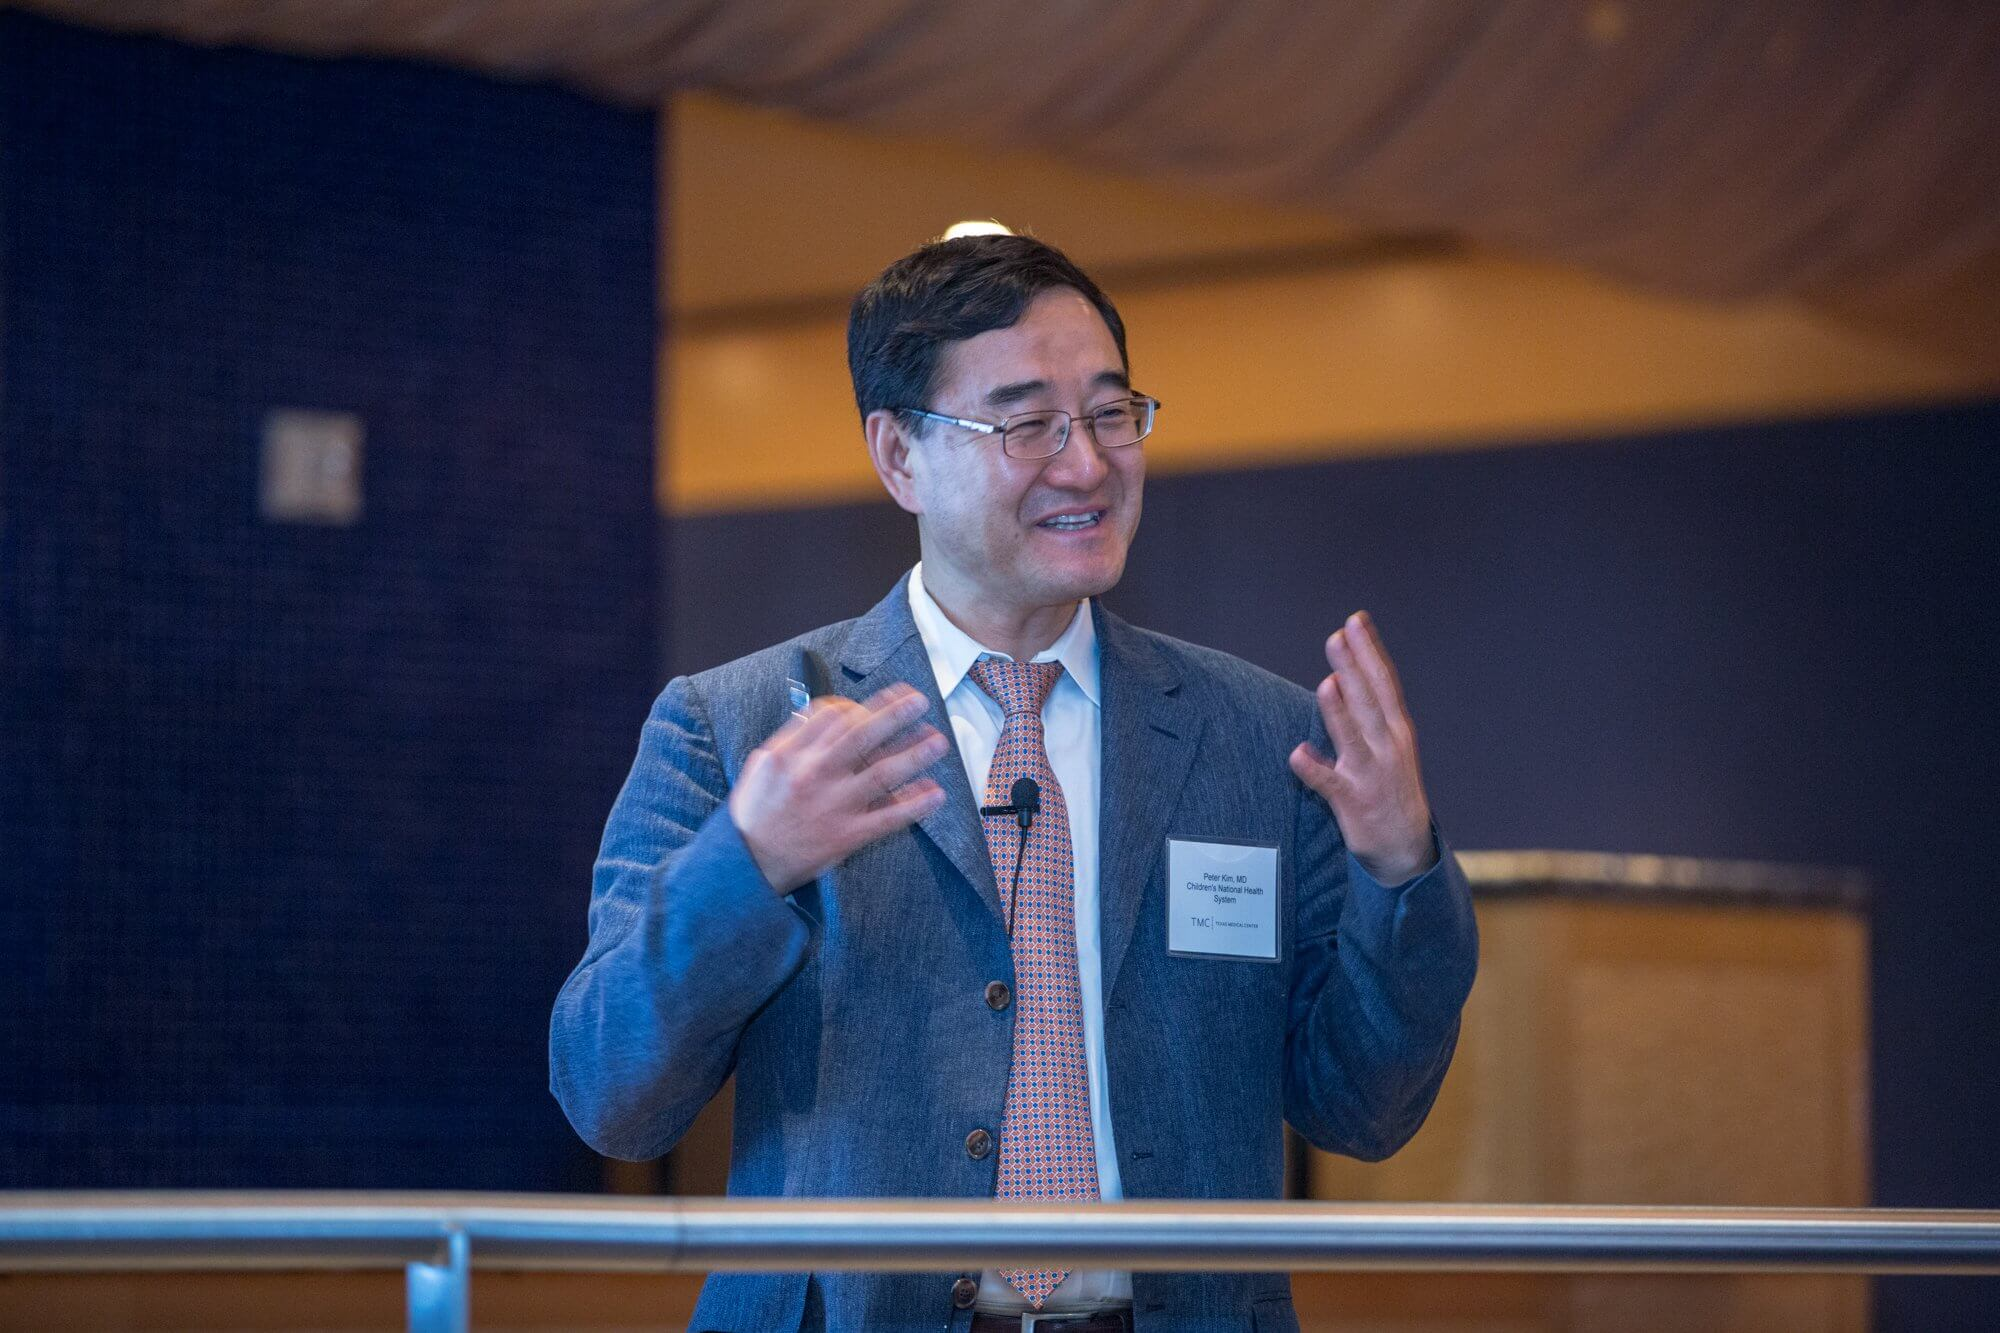 Peter C. W. Kim, M.D., Ph.D., vice president of the Sheikh Zayed Institute for Pediatric Surgical Innovation at Children's National Health System.